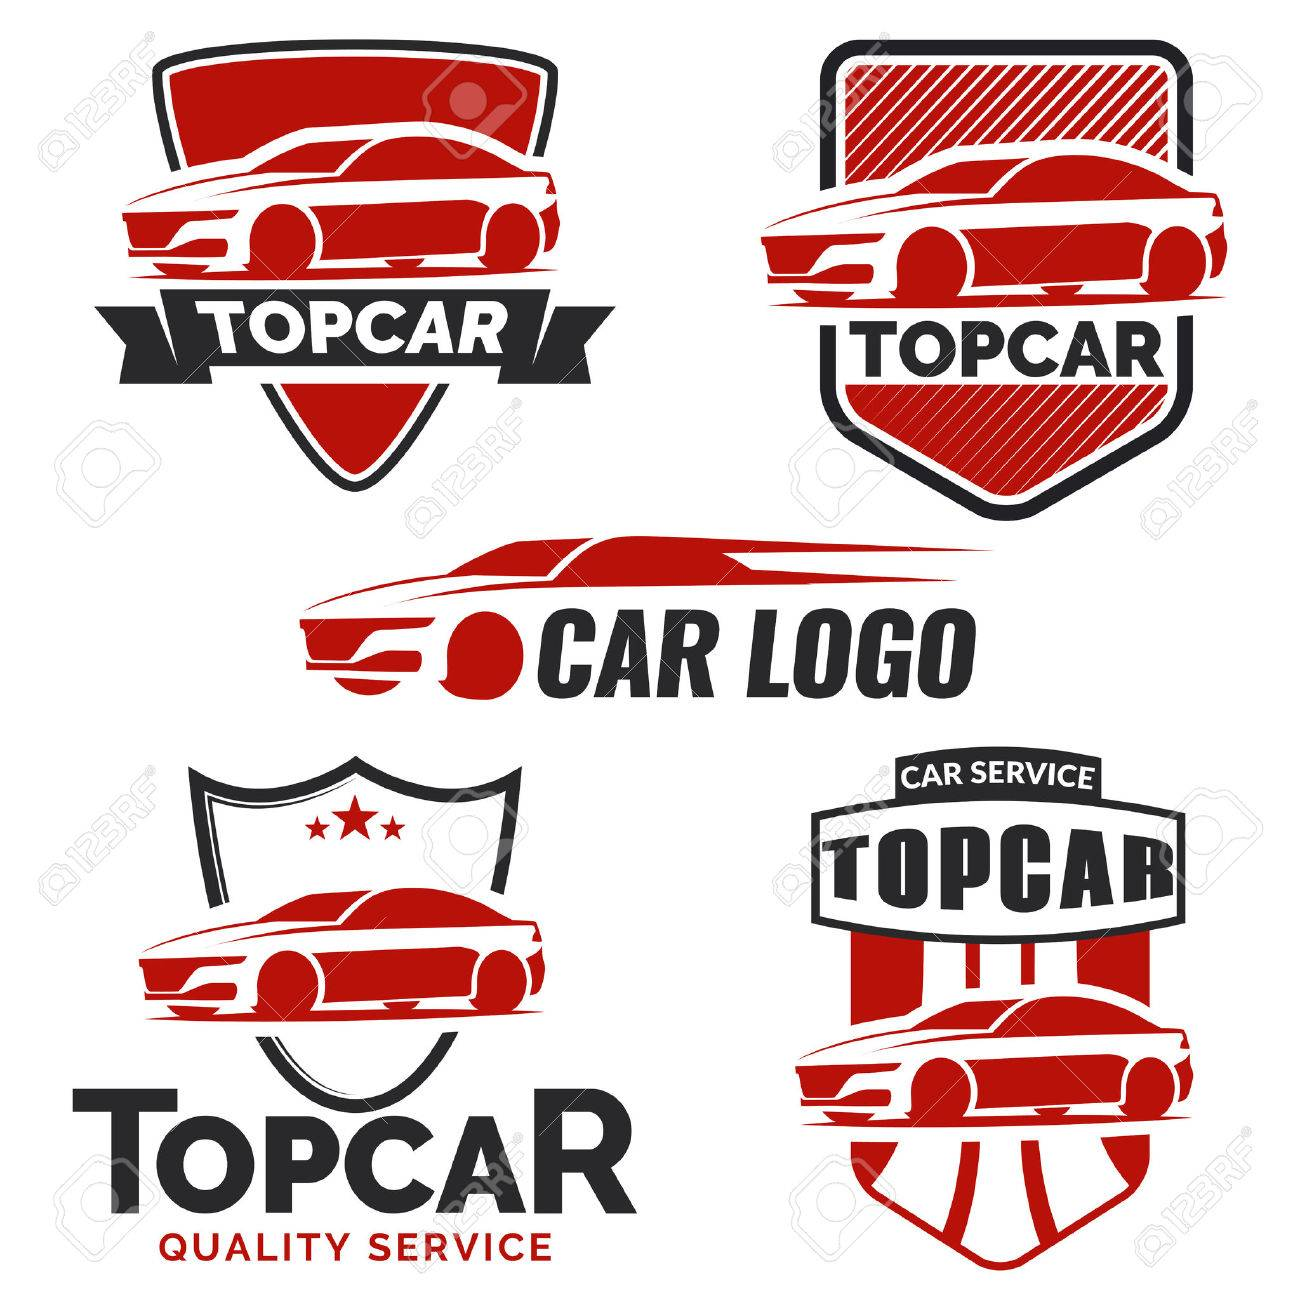 modern car logo on white background royalty free cliparts vectors